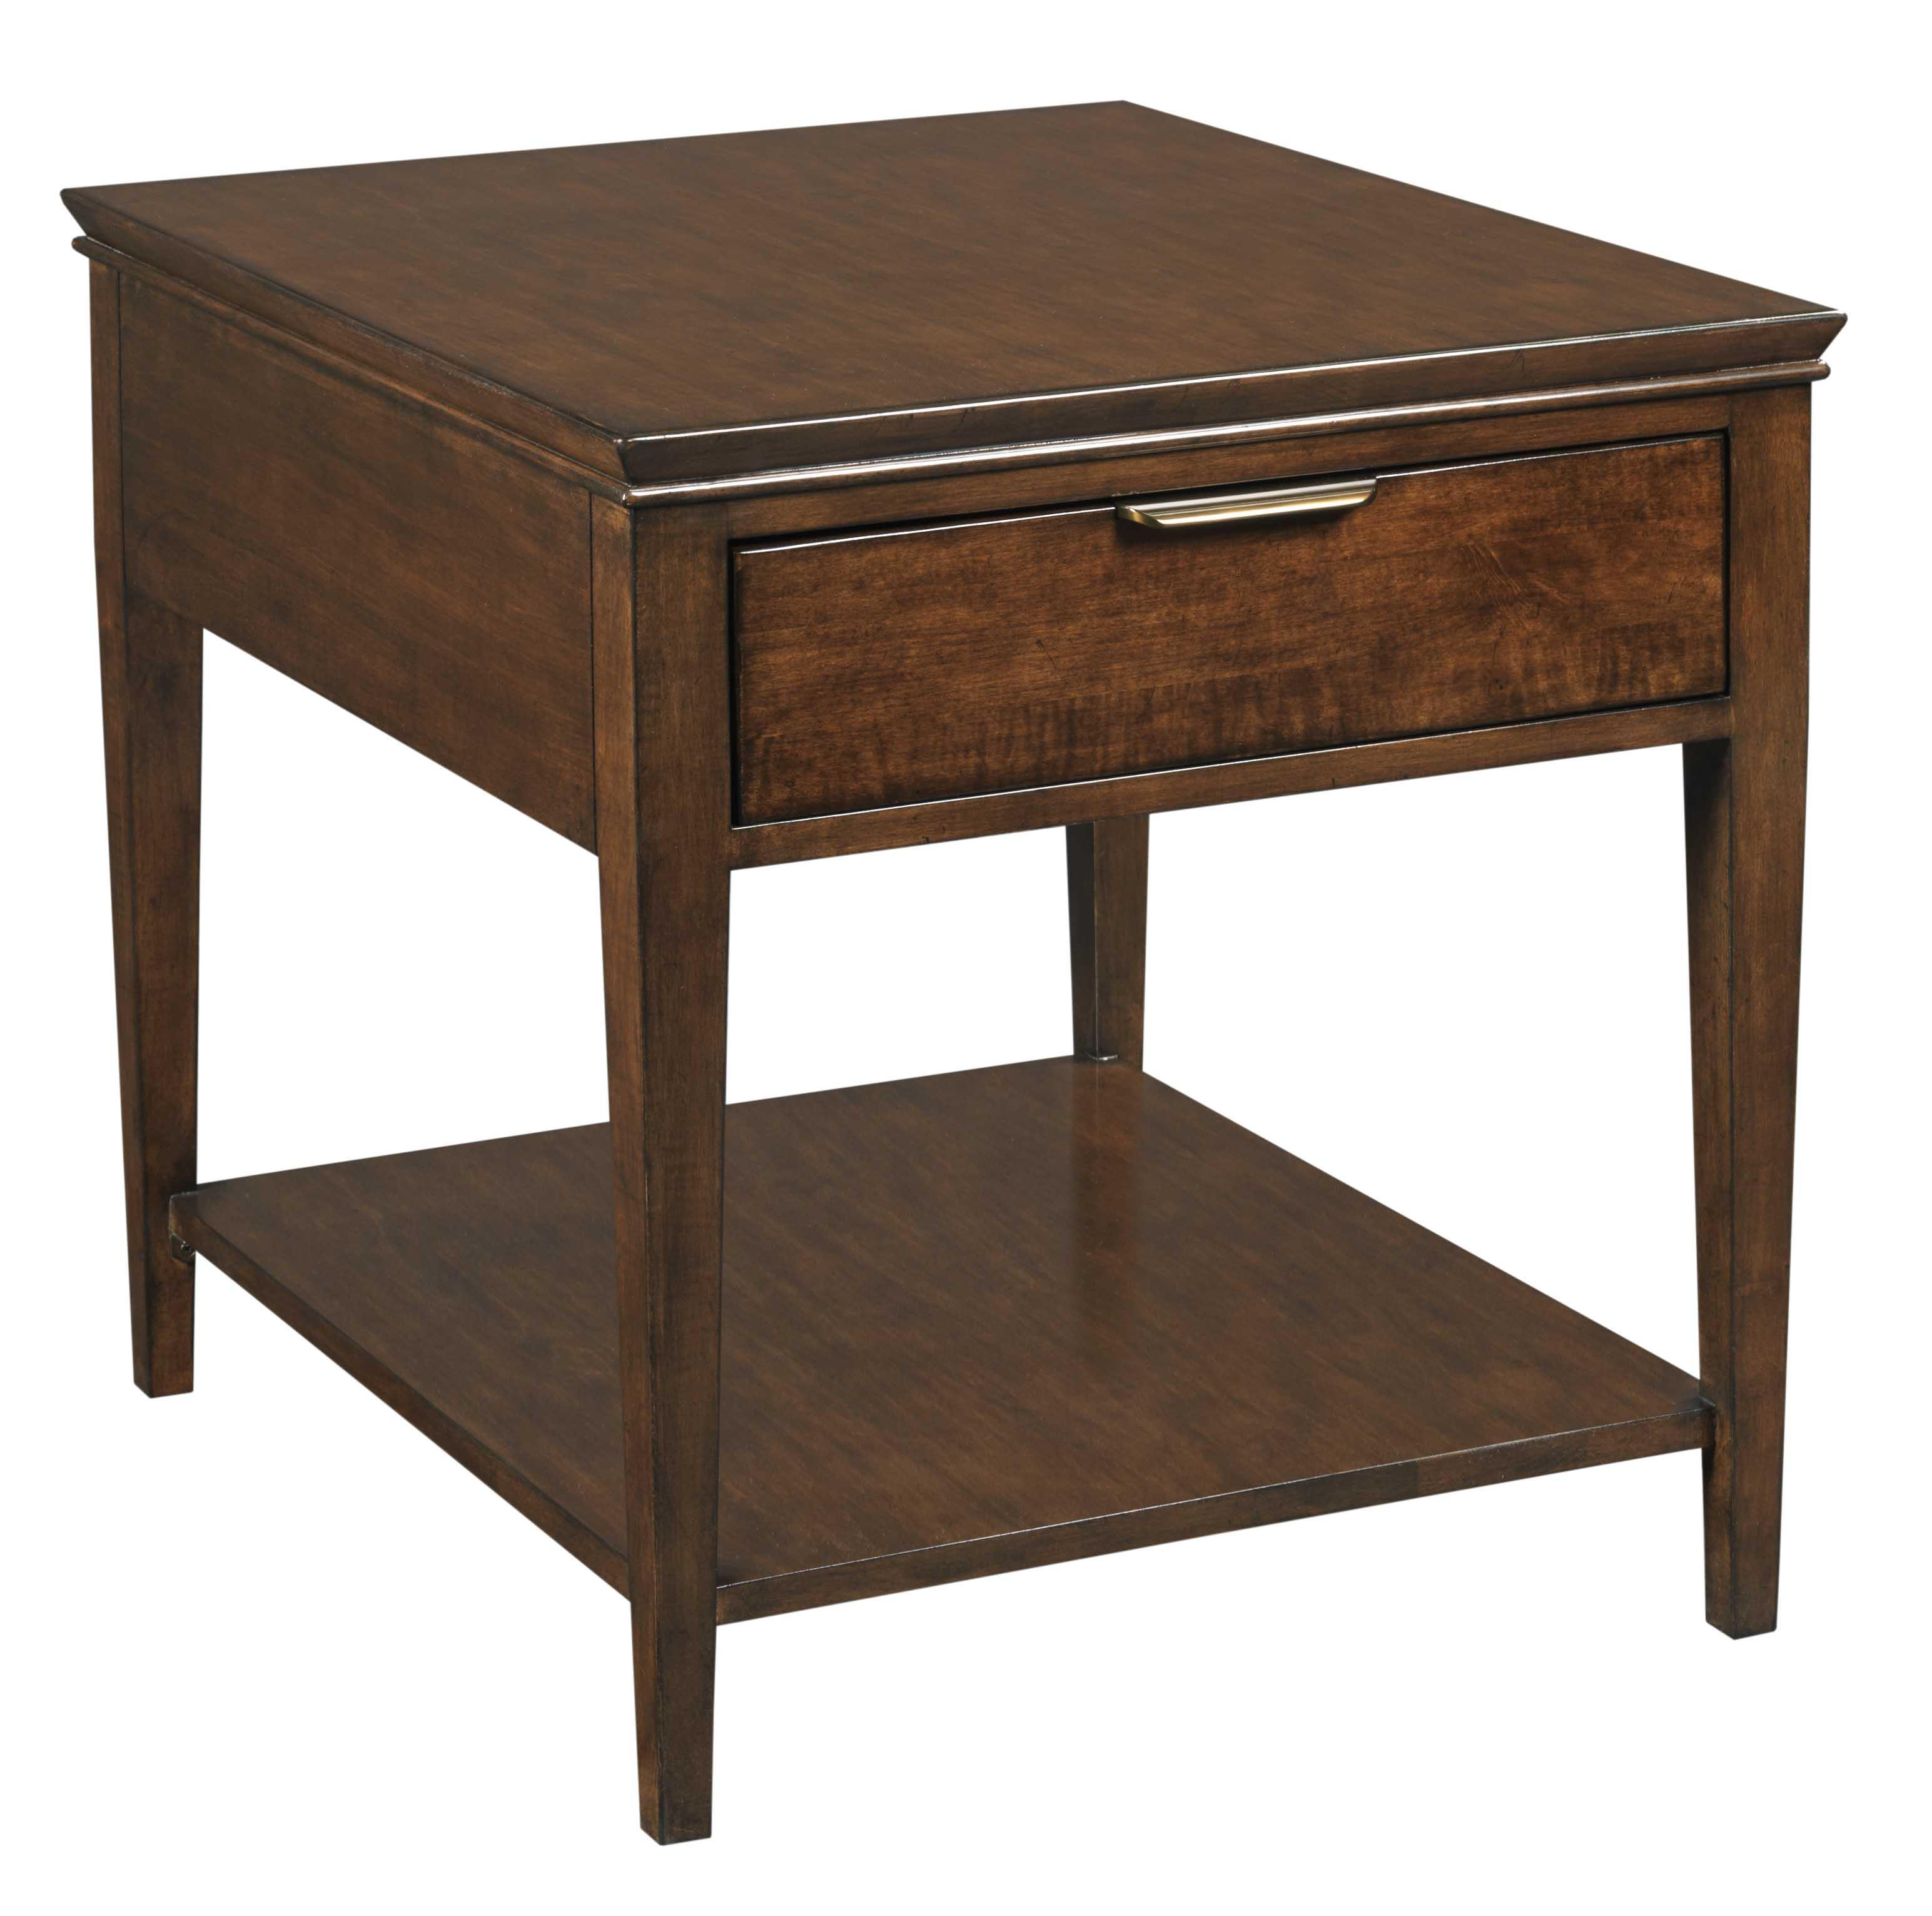 kincaid furniture elise transitional end table with one drawer products color tables ethan allen area rugs ashley free shipping coupon round patio dining for noguchi coffee